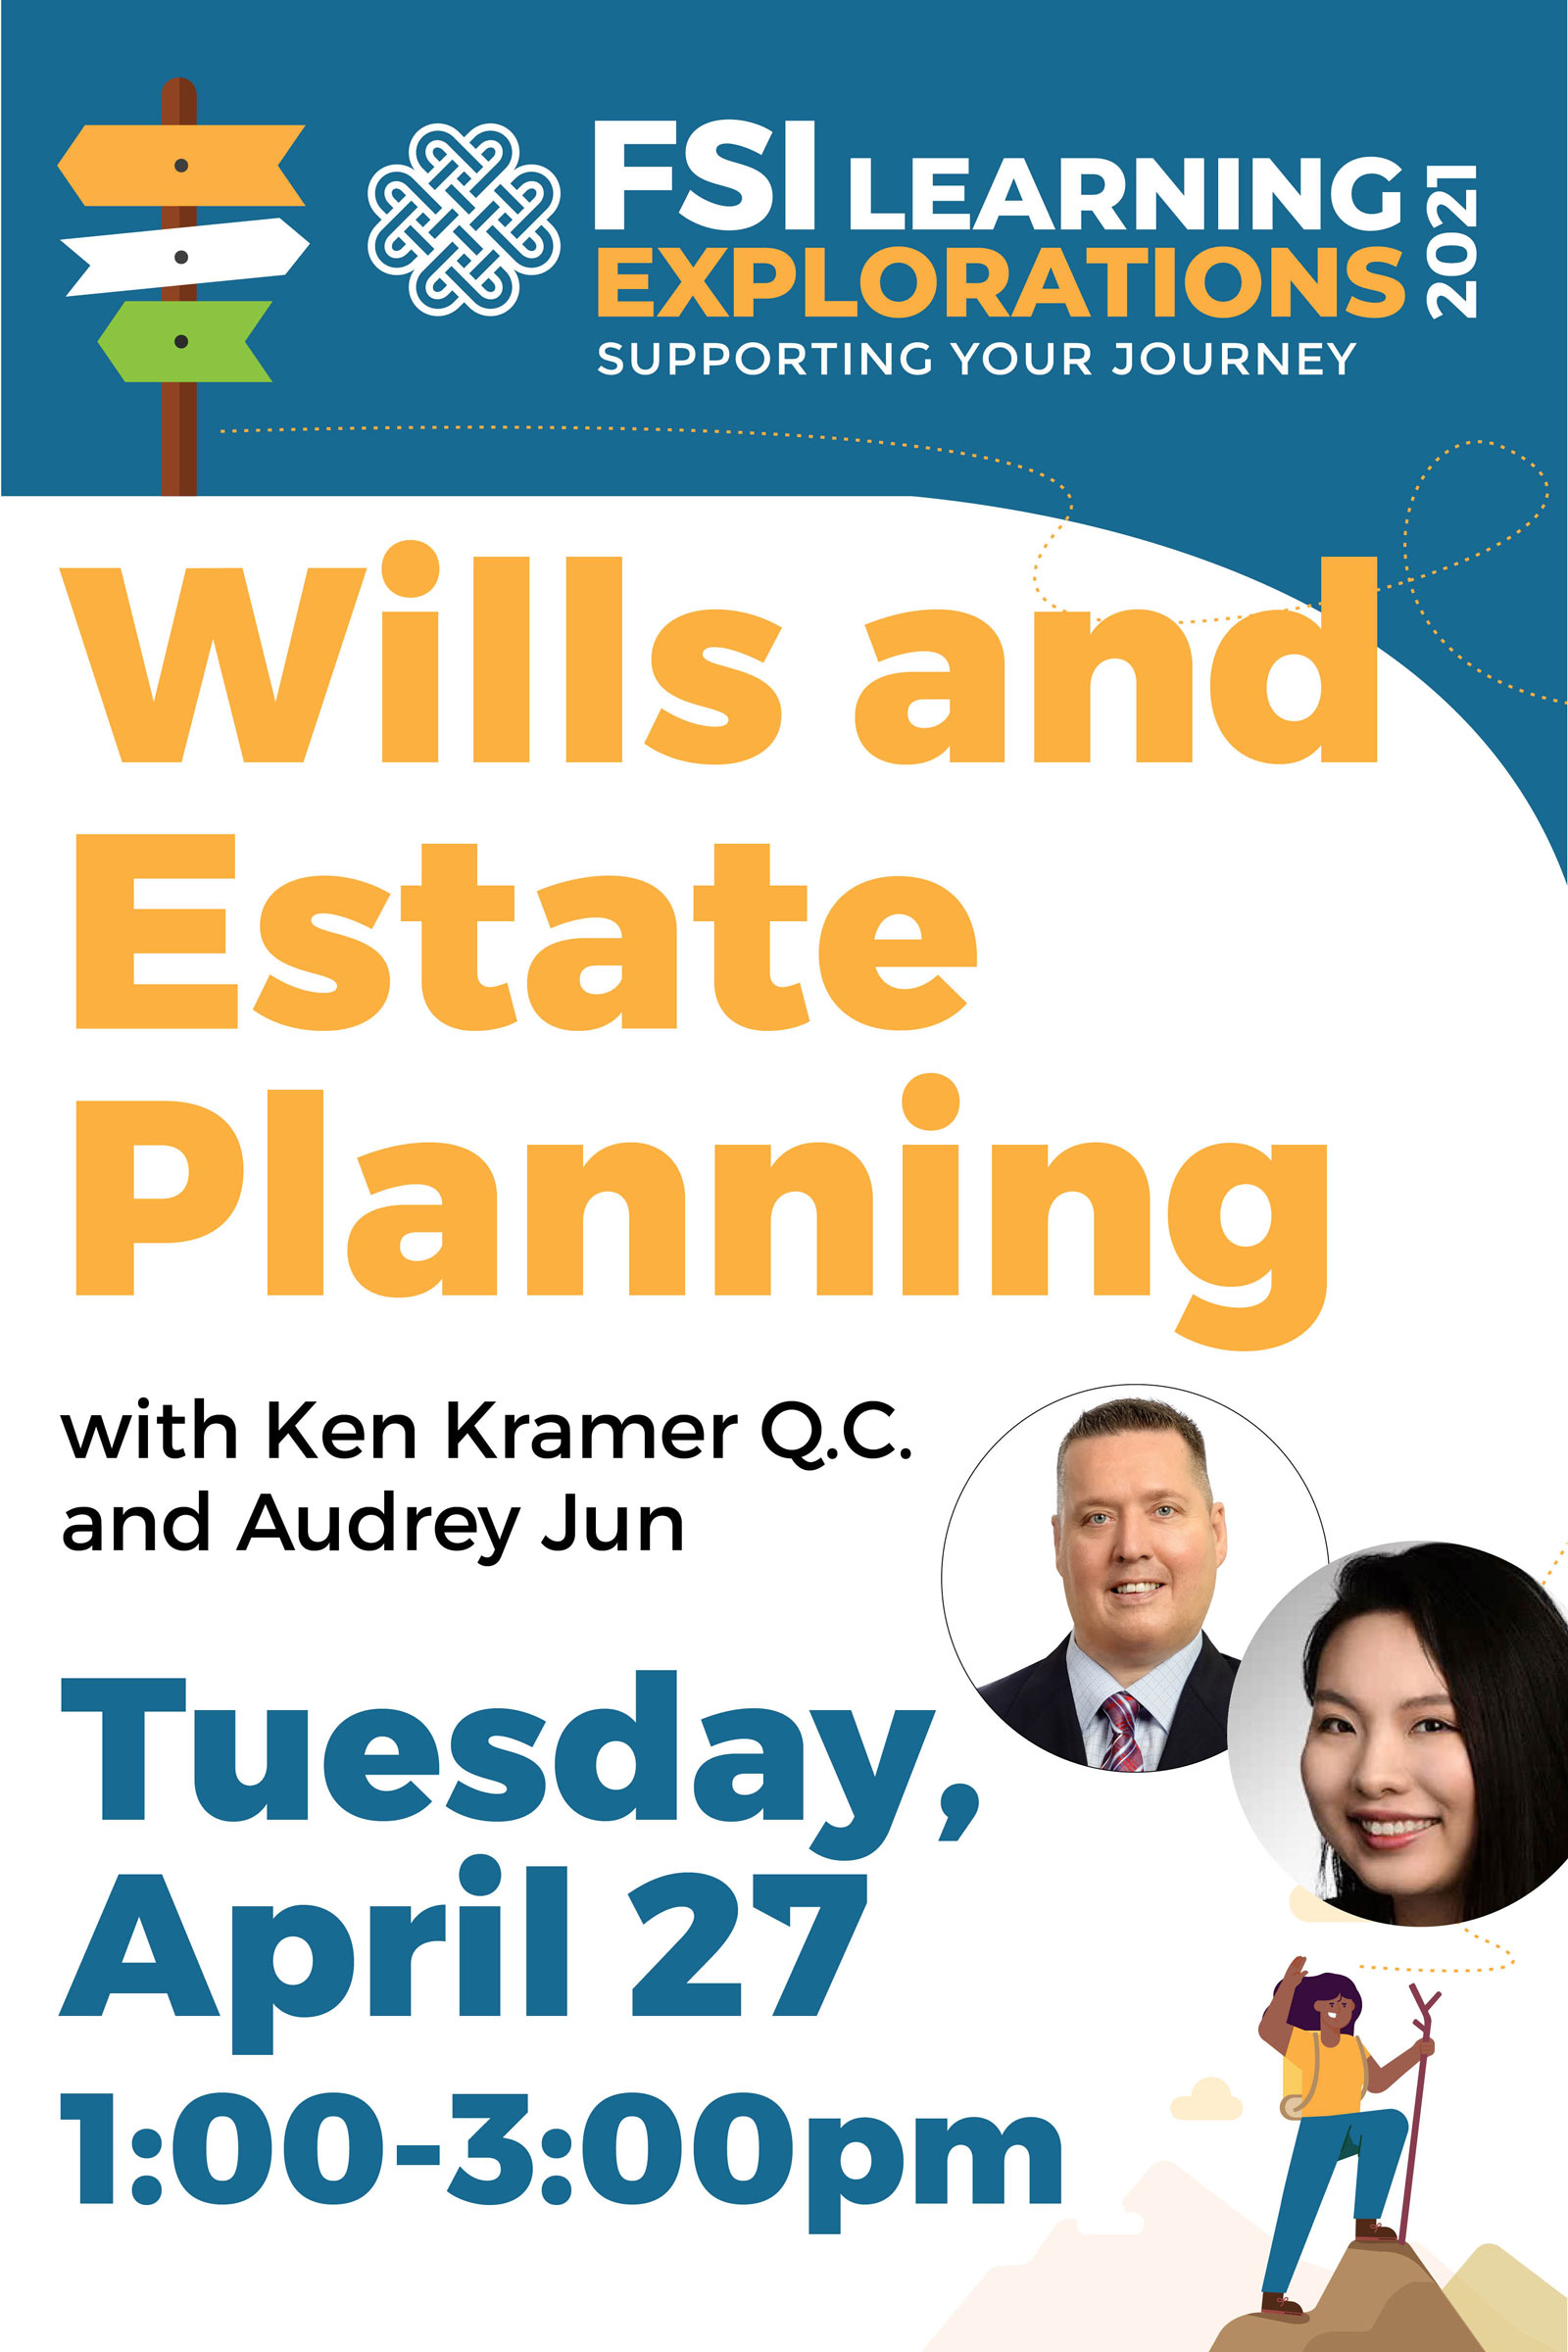 FSI Learning Explorations - Wills and Estate Planning